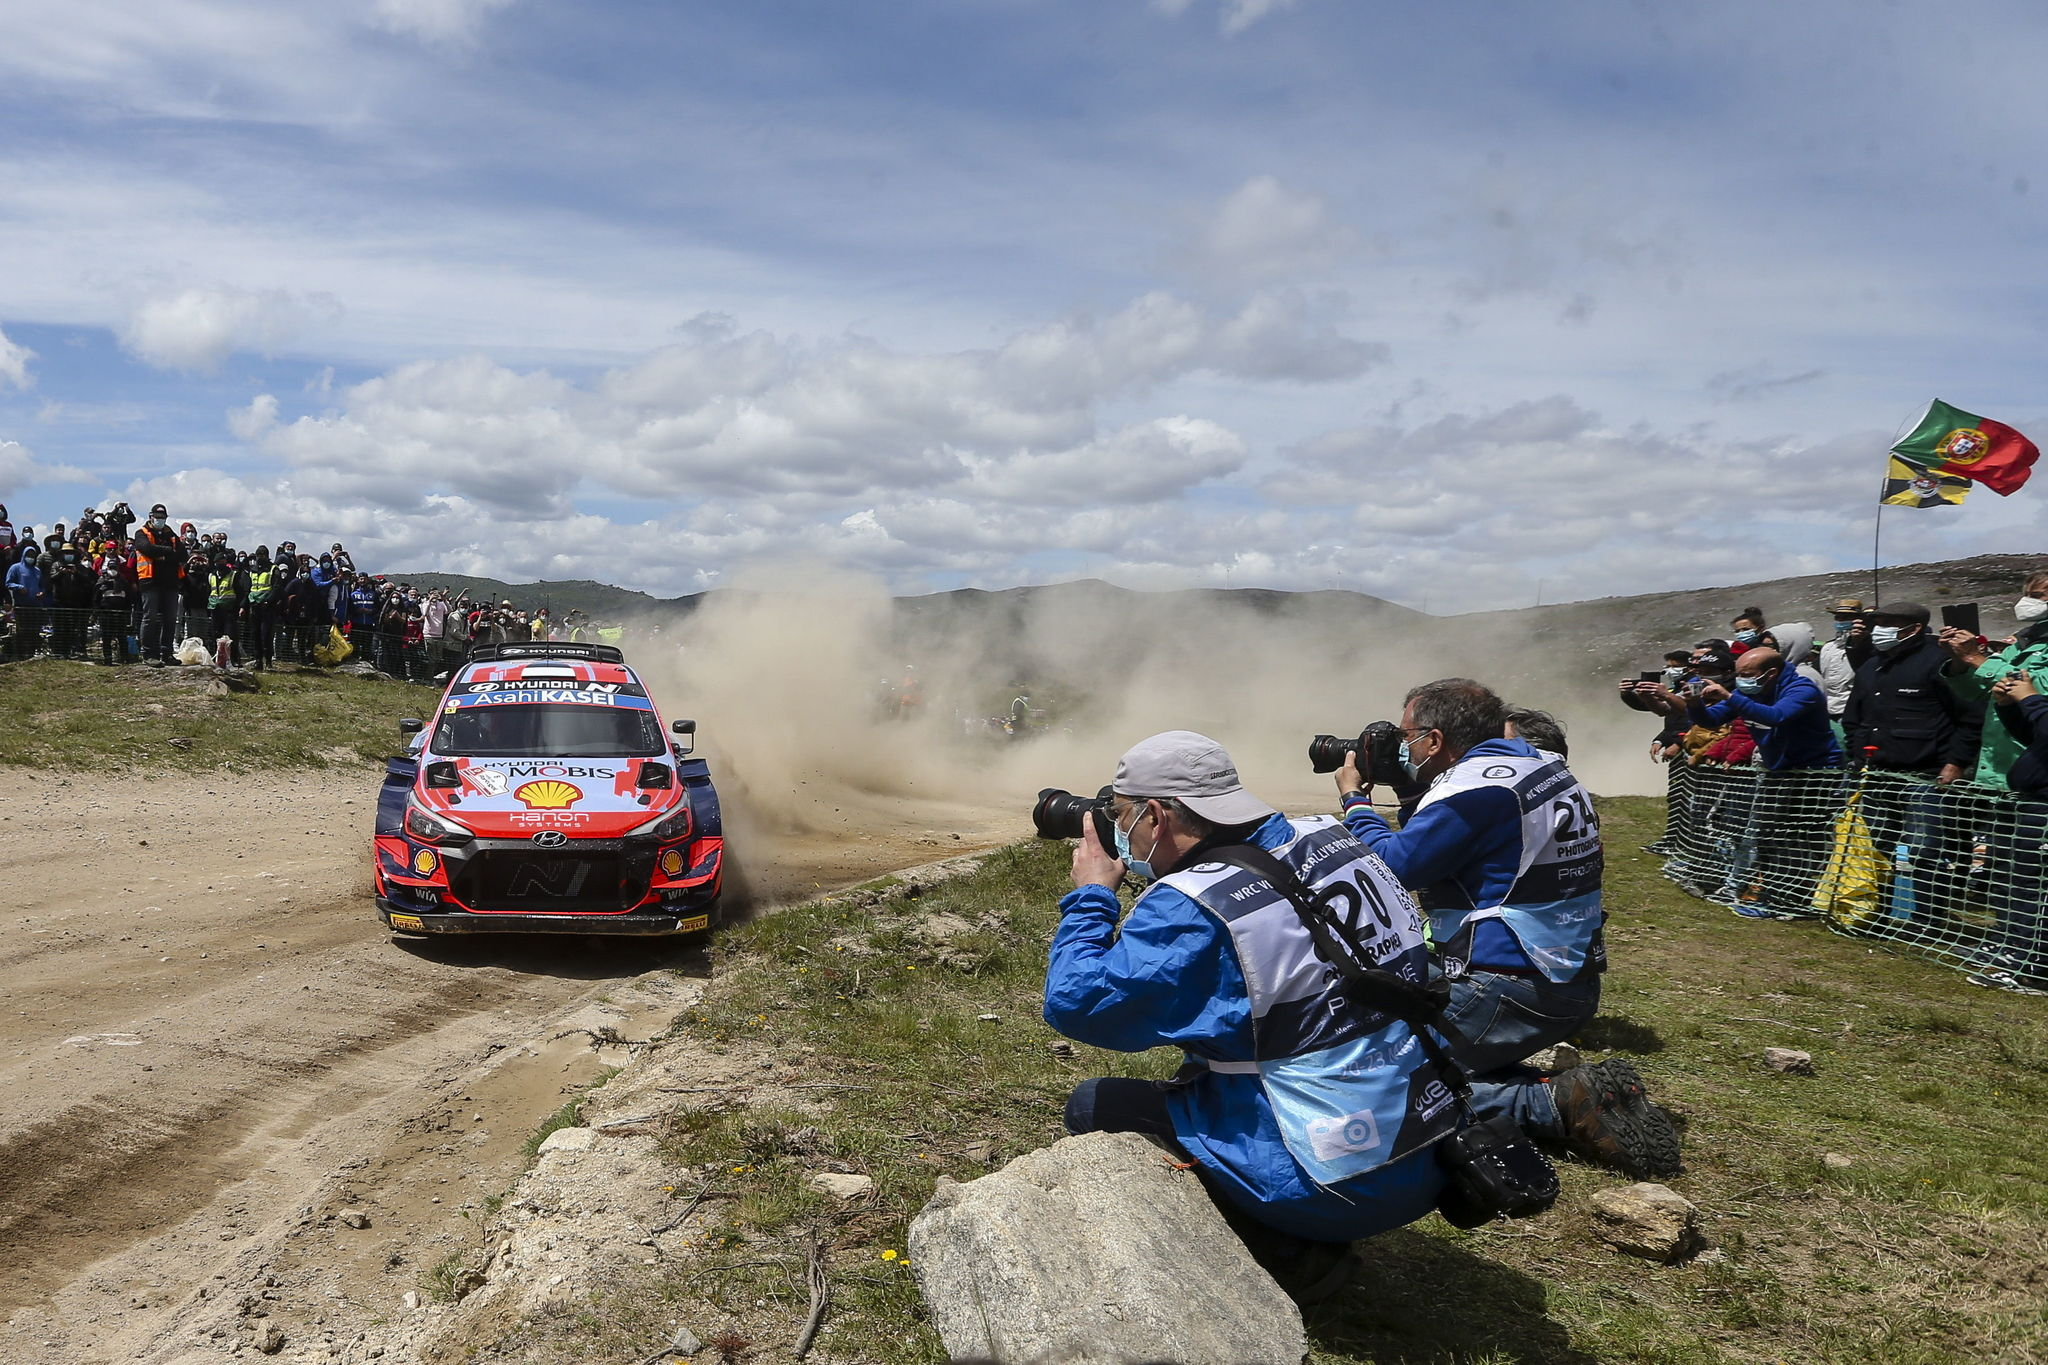 Vieira Do Minho (Portugal), 22/05/2021.- Ott Tanak of Estonia drives his Hyundai i20 Coupe WRC during Day 2 of the lt;HIT gt;Rally lt;/HIT gt; Portugal 2021 as part of the FIA World lt;HIT gt;Rally lt;/HIT gt; Championship (WRC) near Vieira do Minho, Portugal, 22 May 2021. EFE/EPA/JOSE COELHO